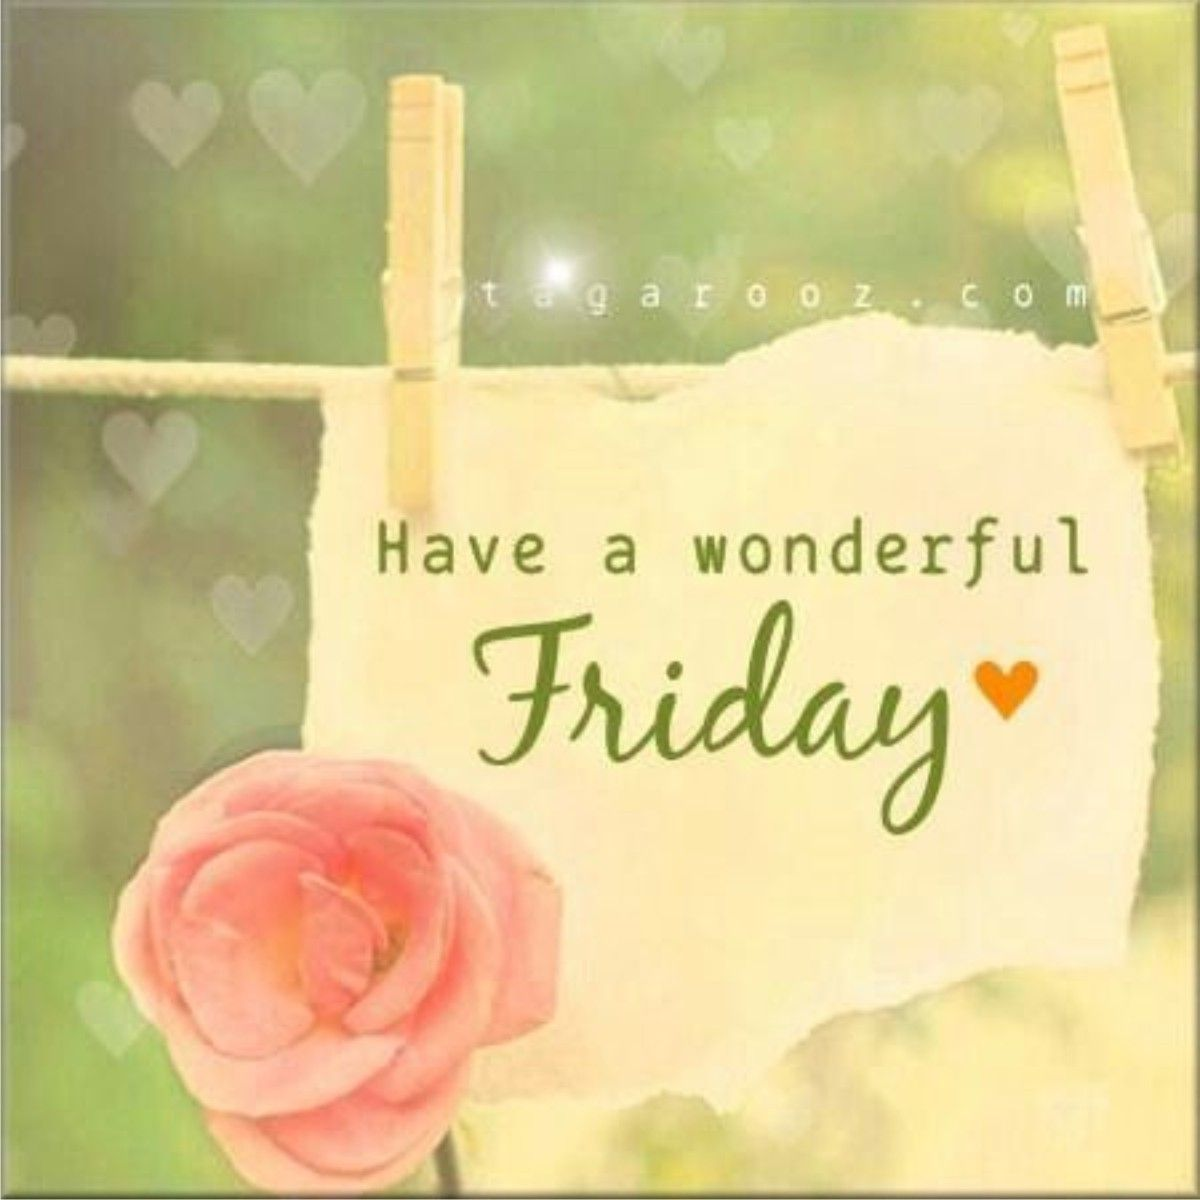 Feel wonderful, it's Friday! Have a great weekend ahead